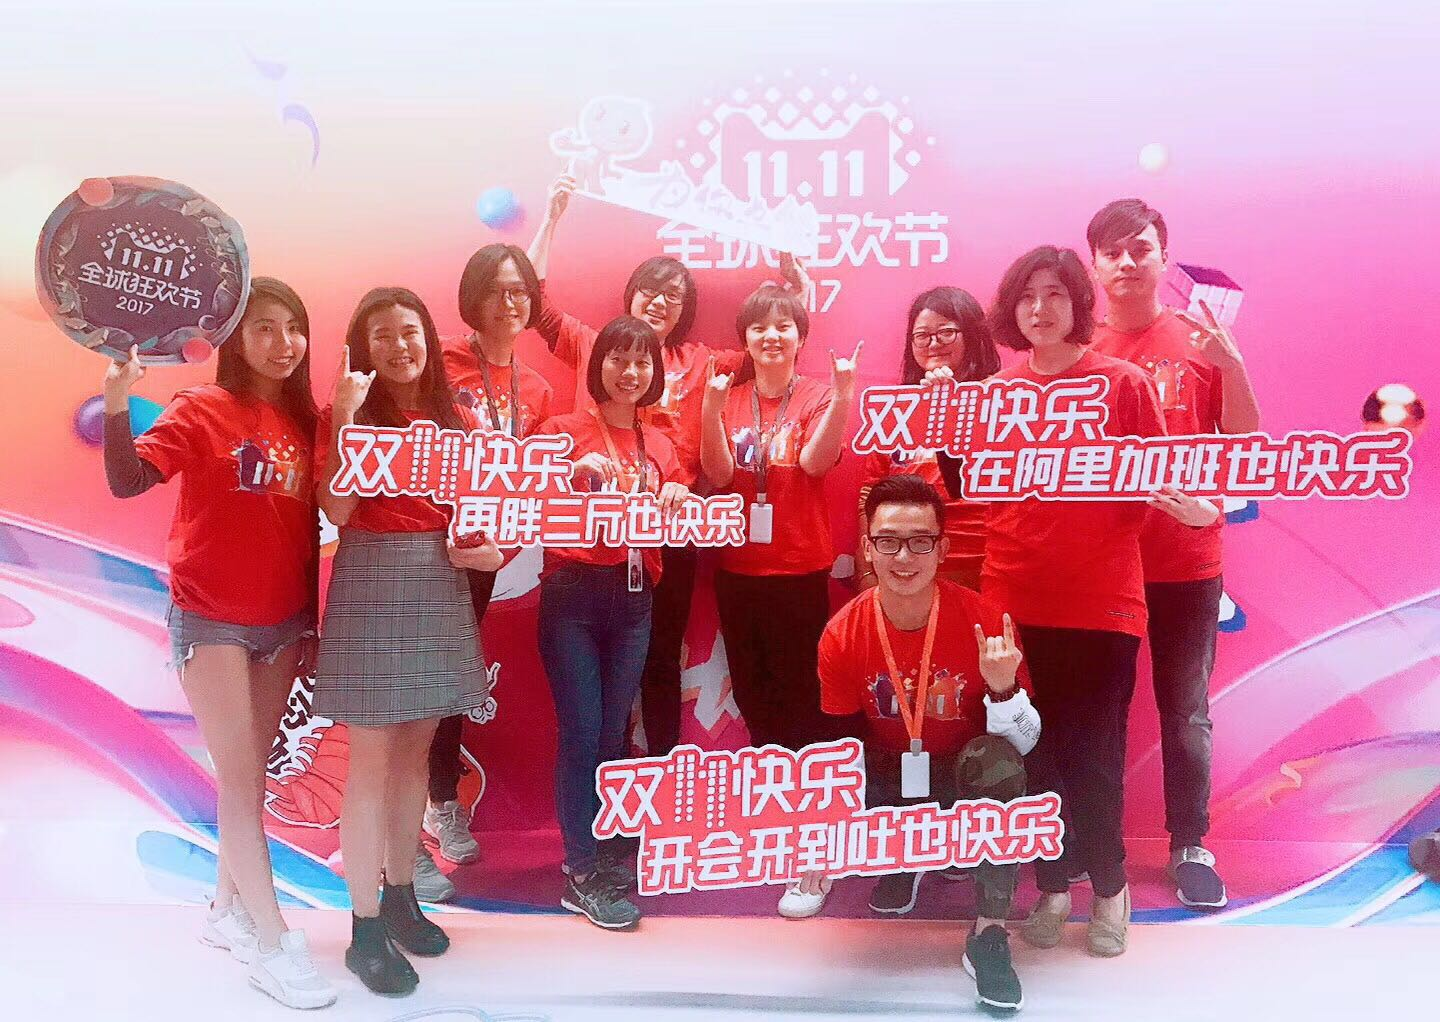 An UM alumna who works at Tmall (first from the left)